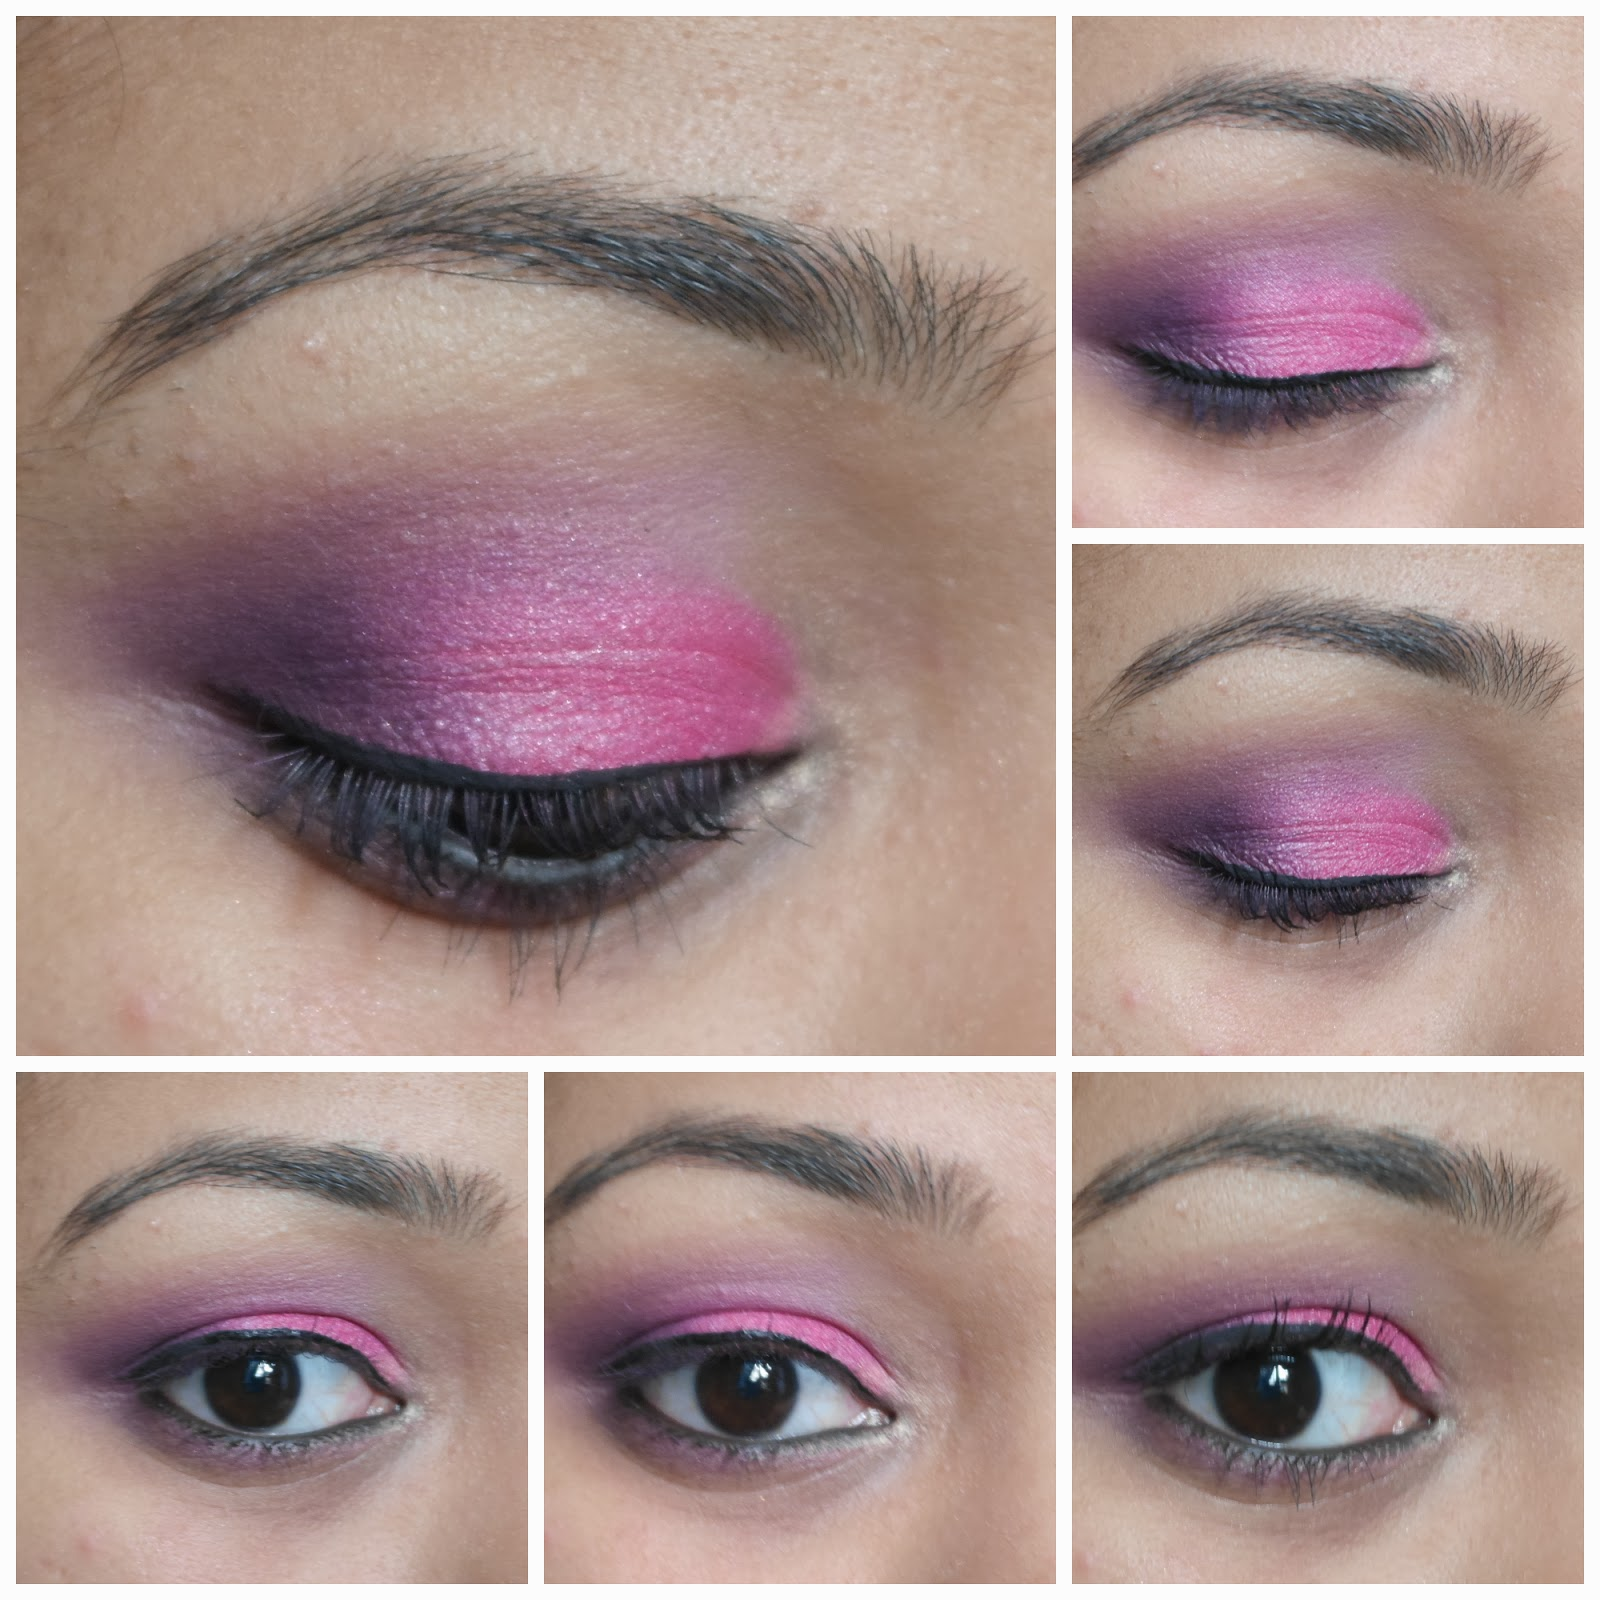 Pink Purple eyemakeup-tutorial-technique